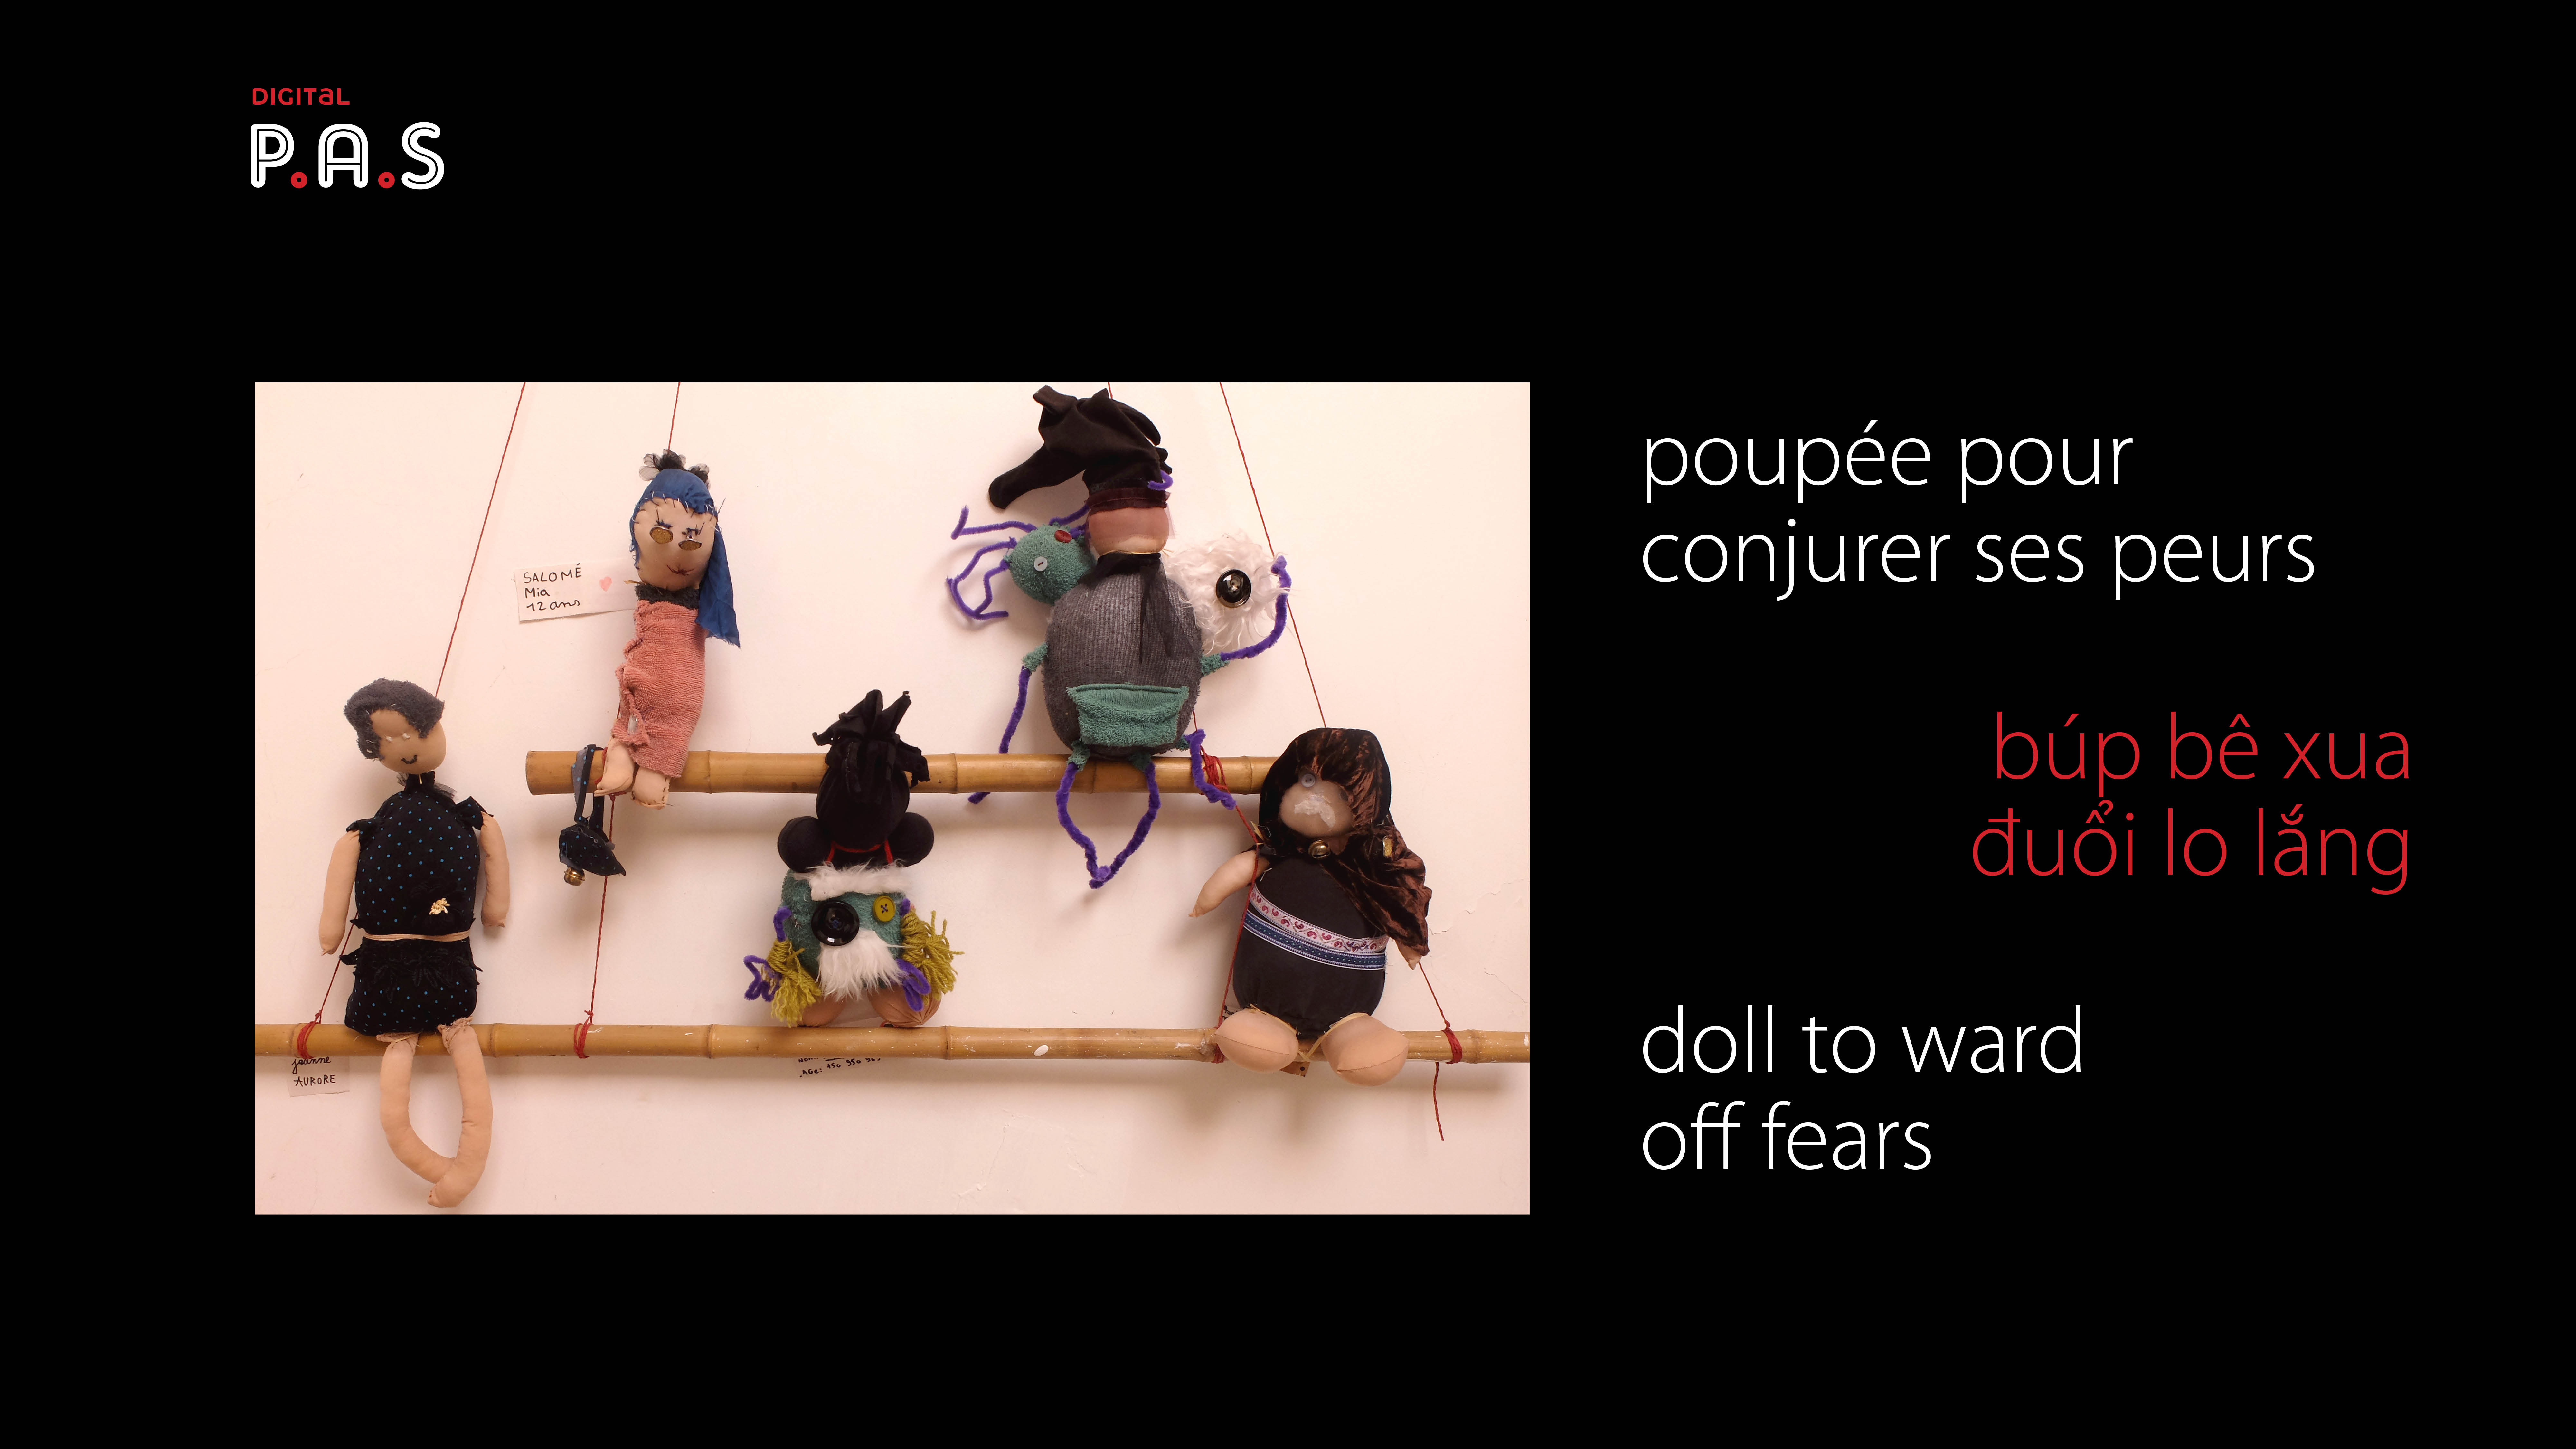 A doll to ward off fears